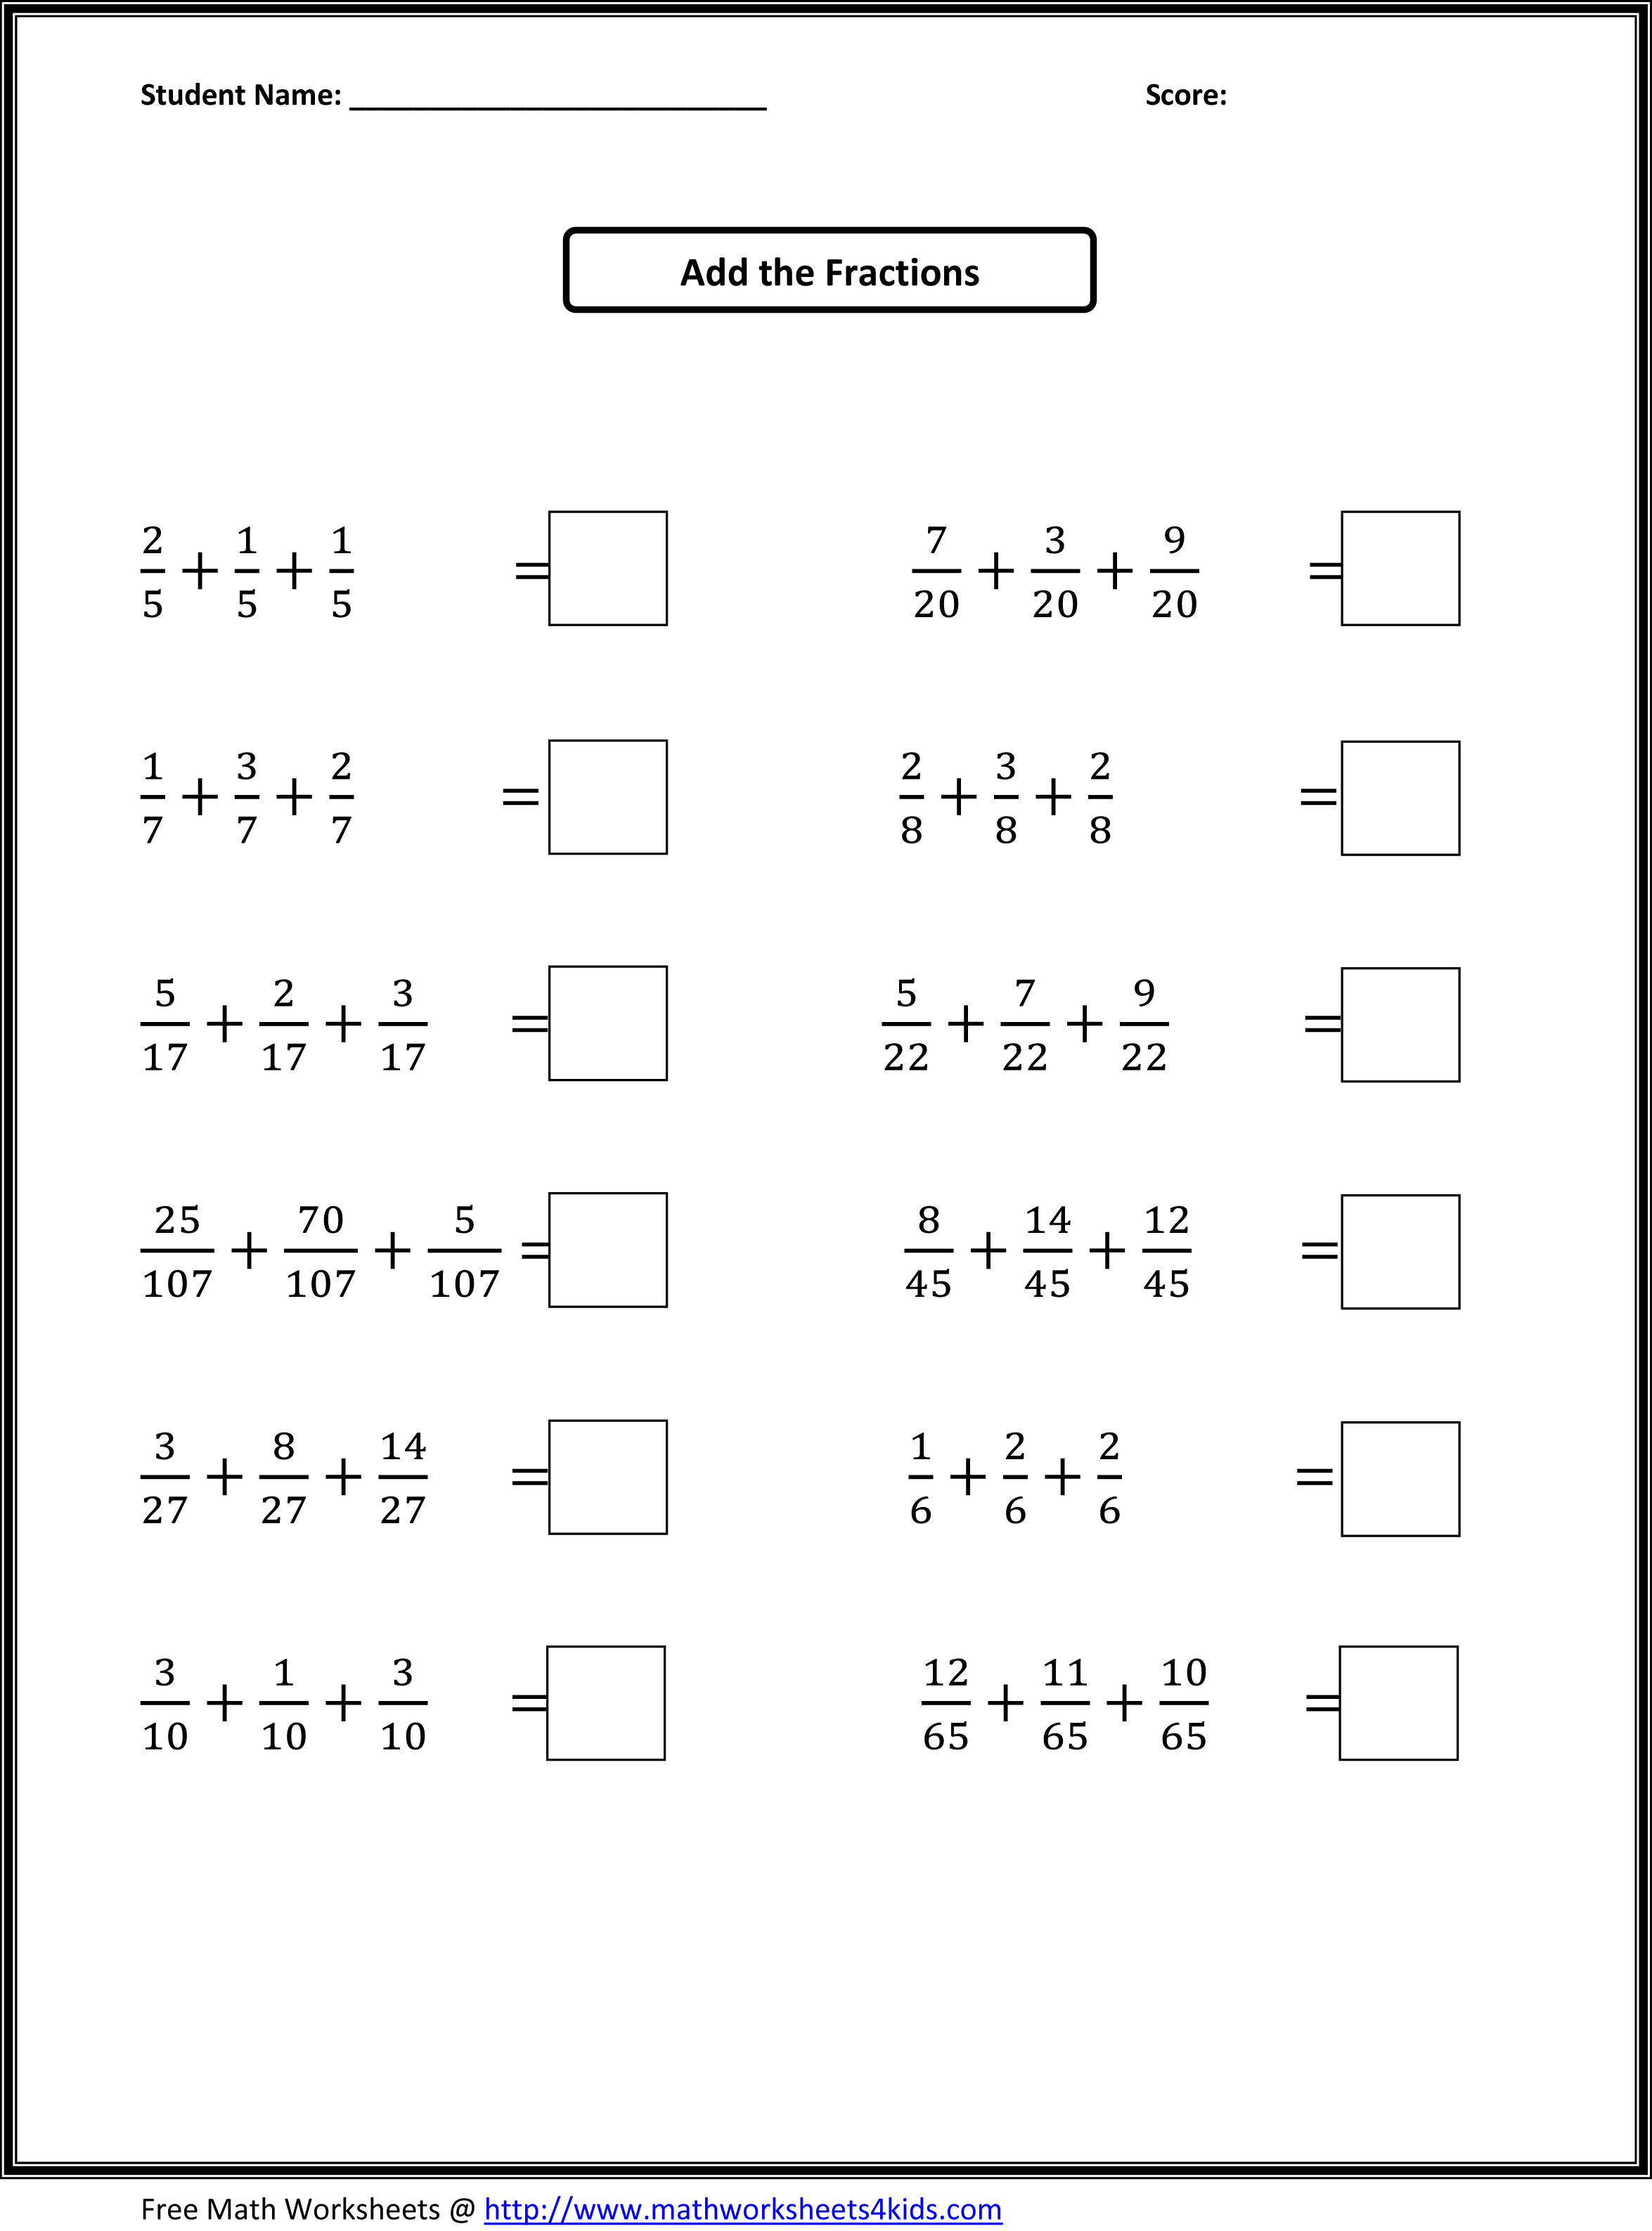 math worksheet : fraction worksheets 4th grade  kids activities : Fraction Worksheet Grade 3